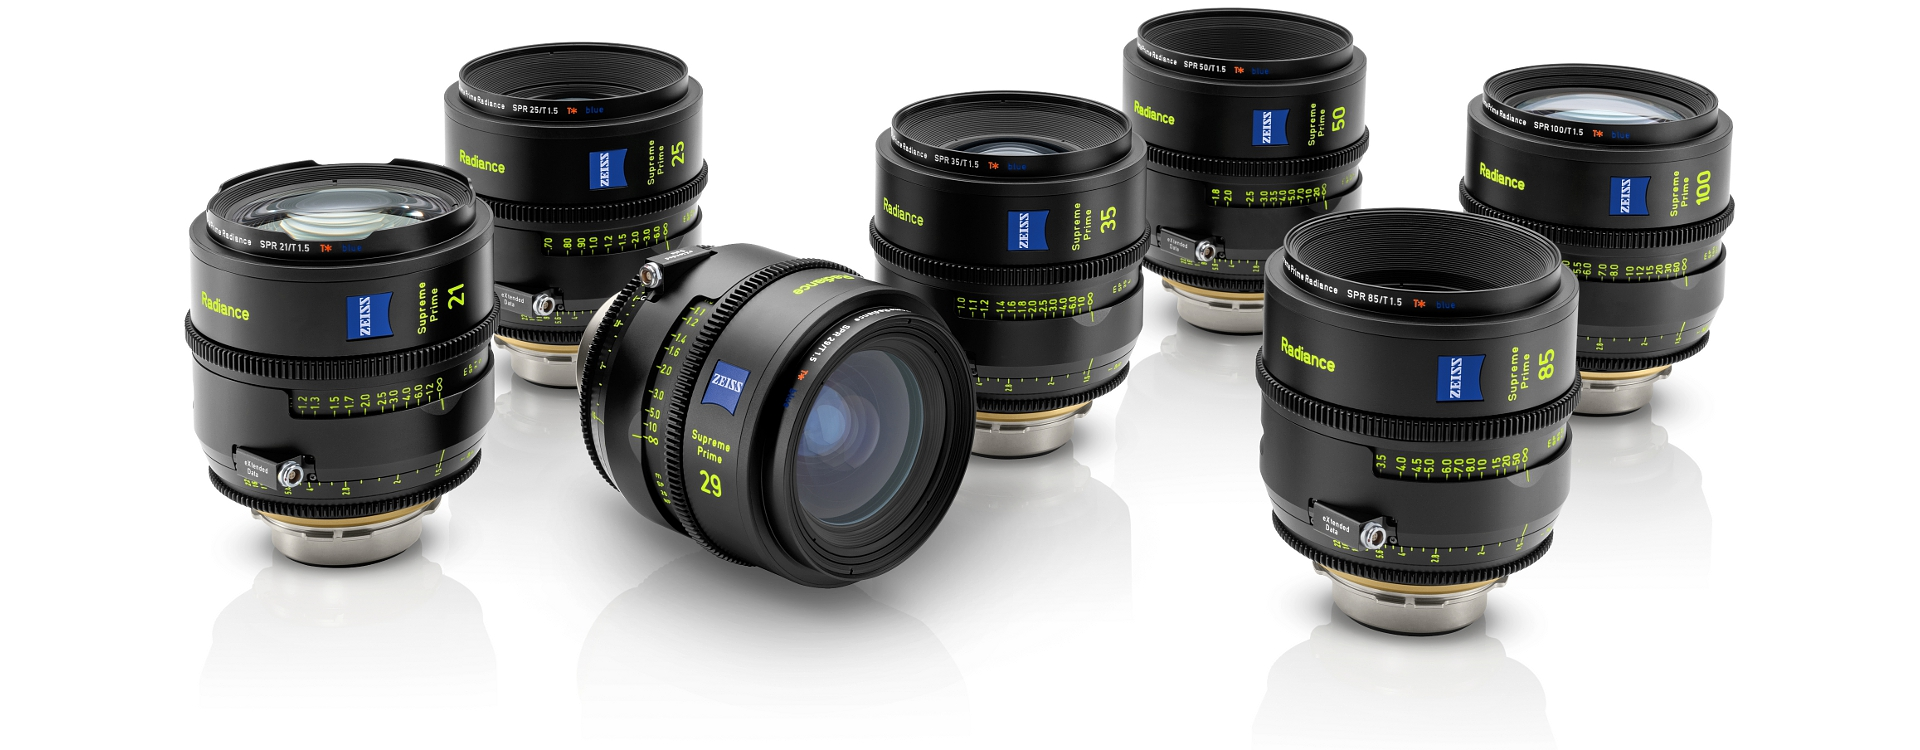 SET ZEISS SUPREME RADIANCE T 1.5 FF